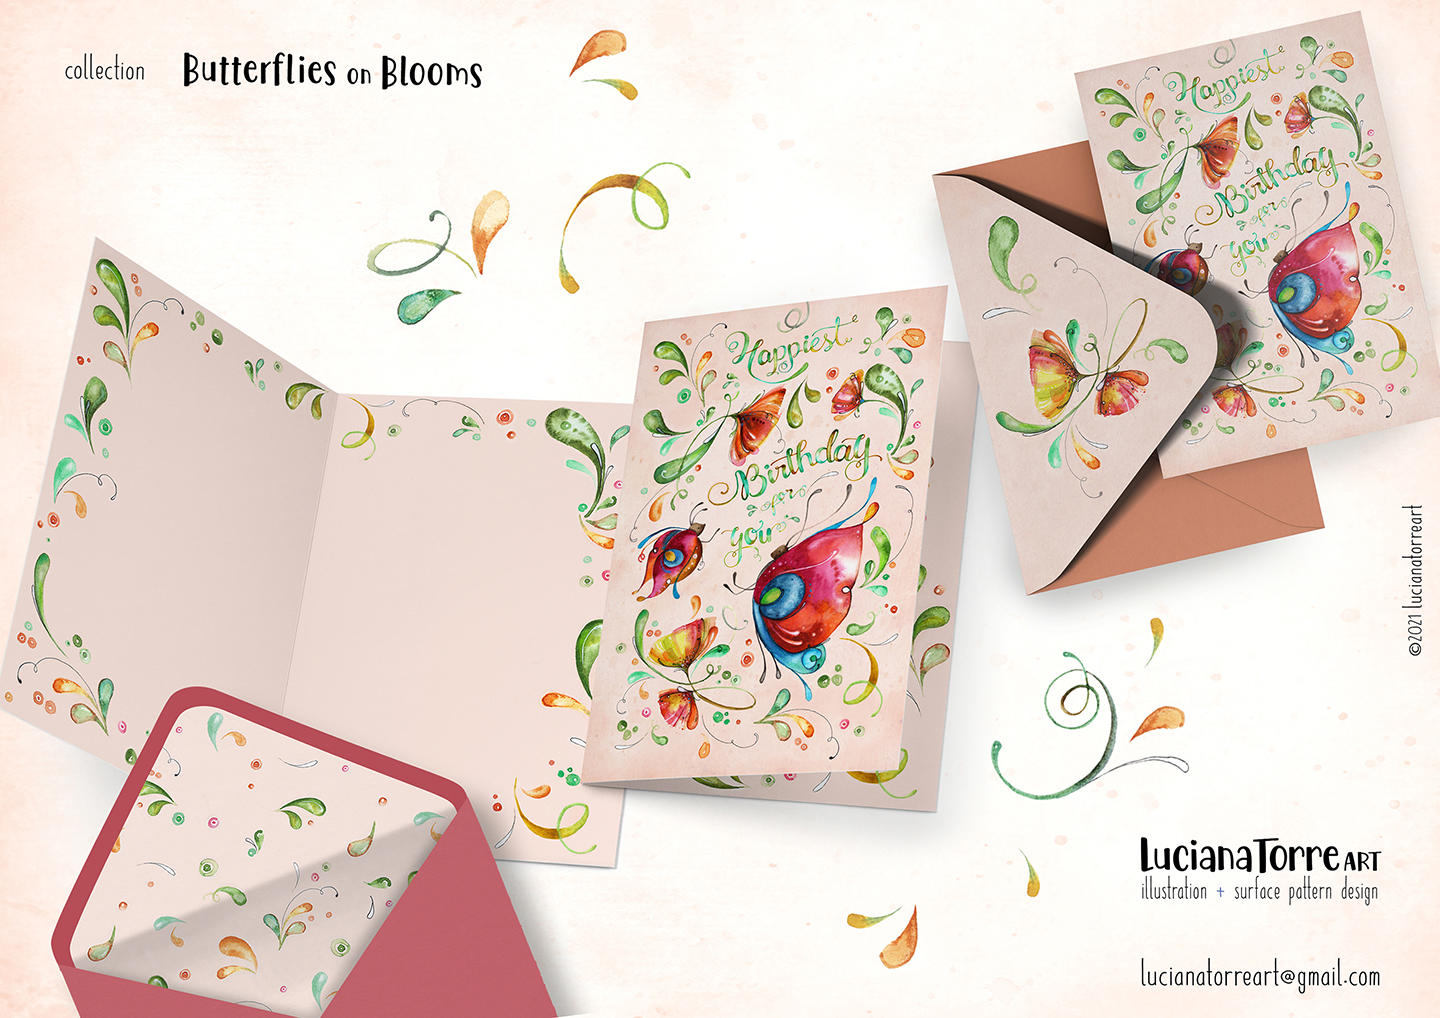 LucianaTorreArt lookbook greeting cards for licensing 15